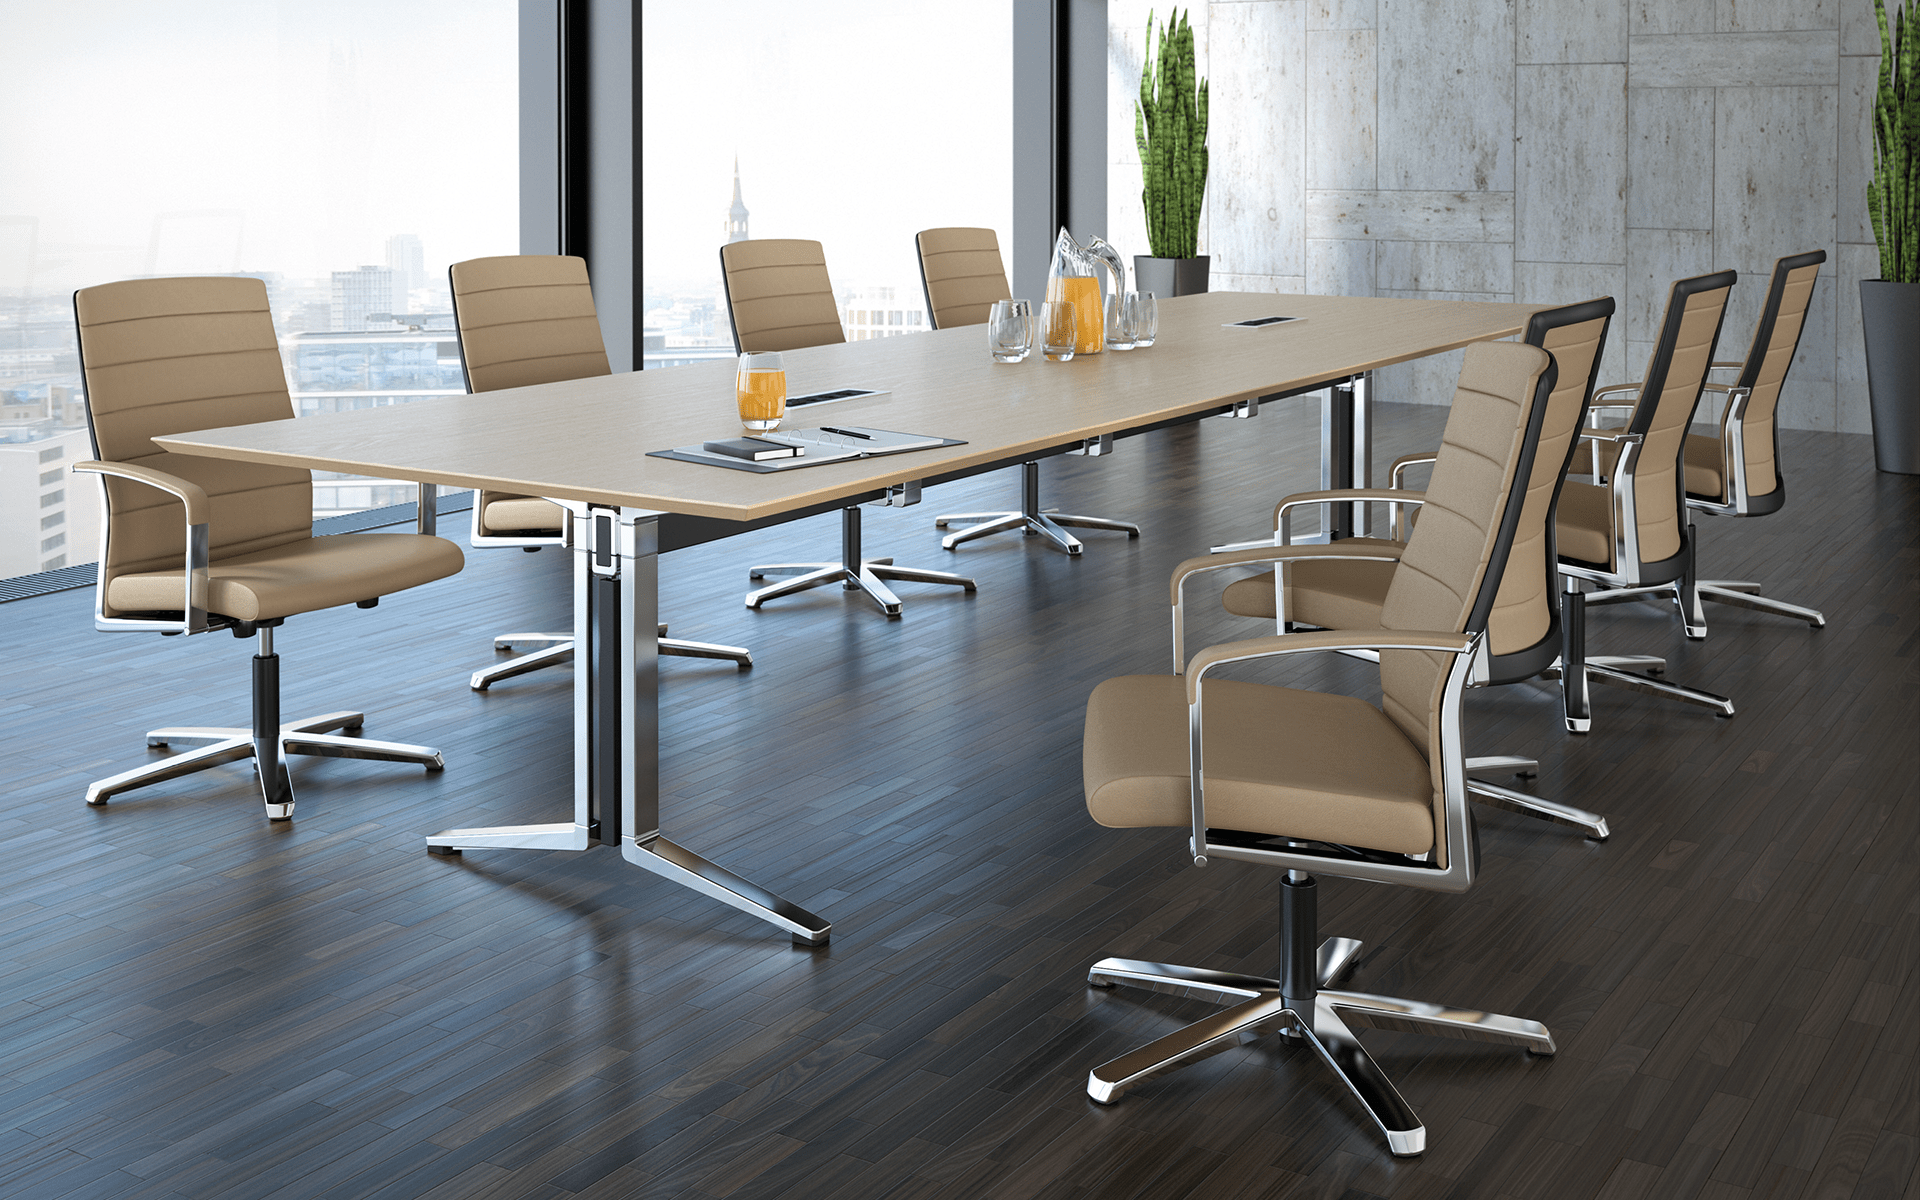 Modern conference hall, furnished with K+N Agenda conference chairs by ITO Design in beige